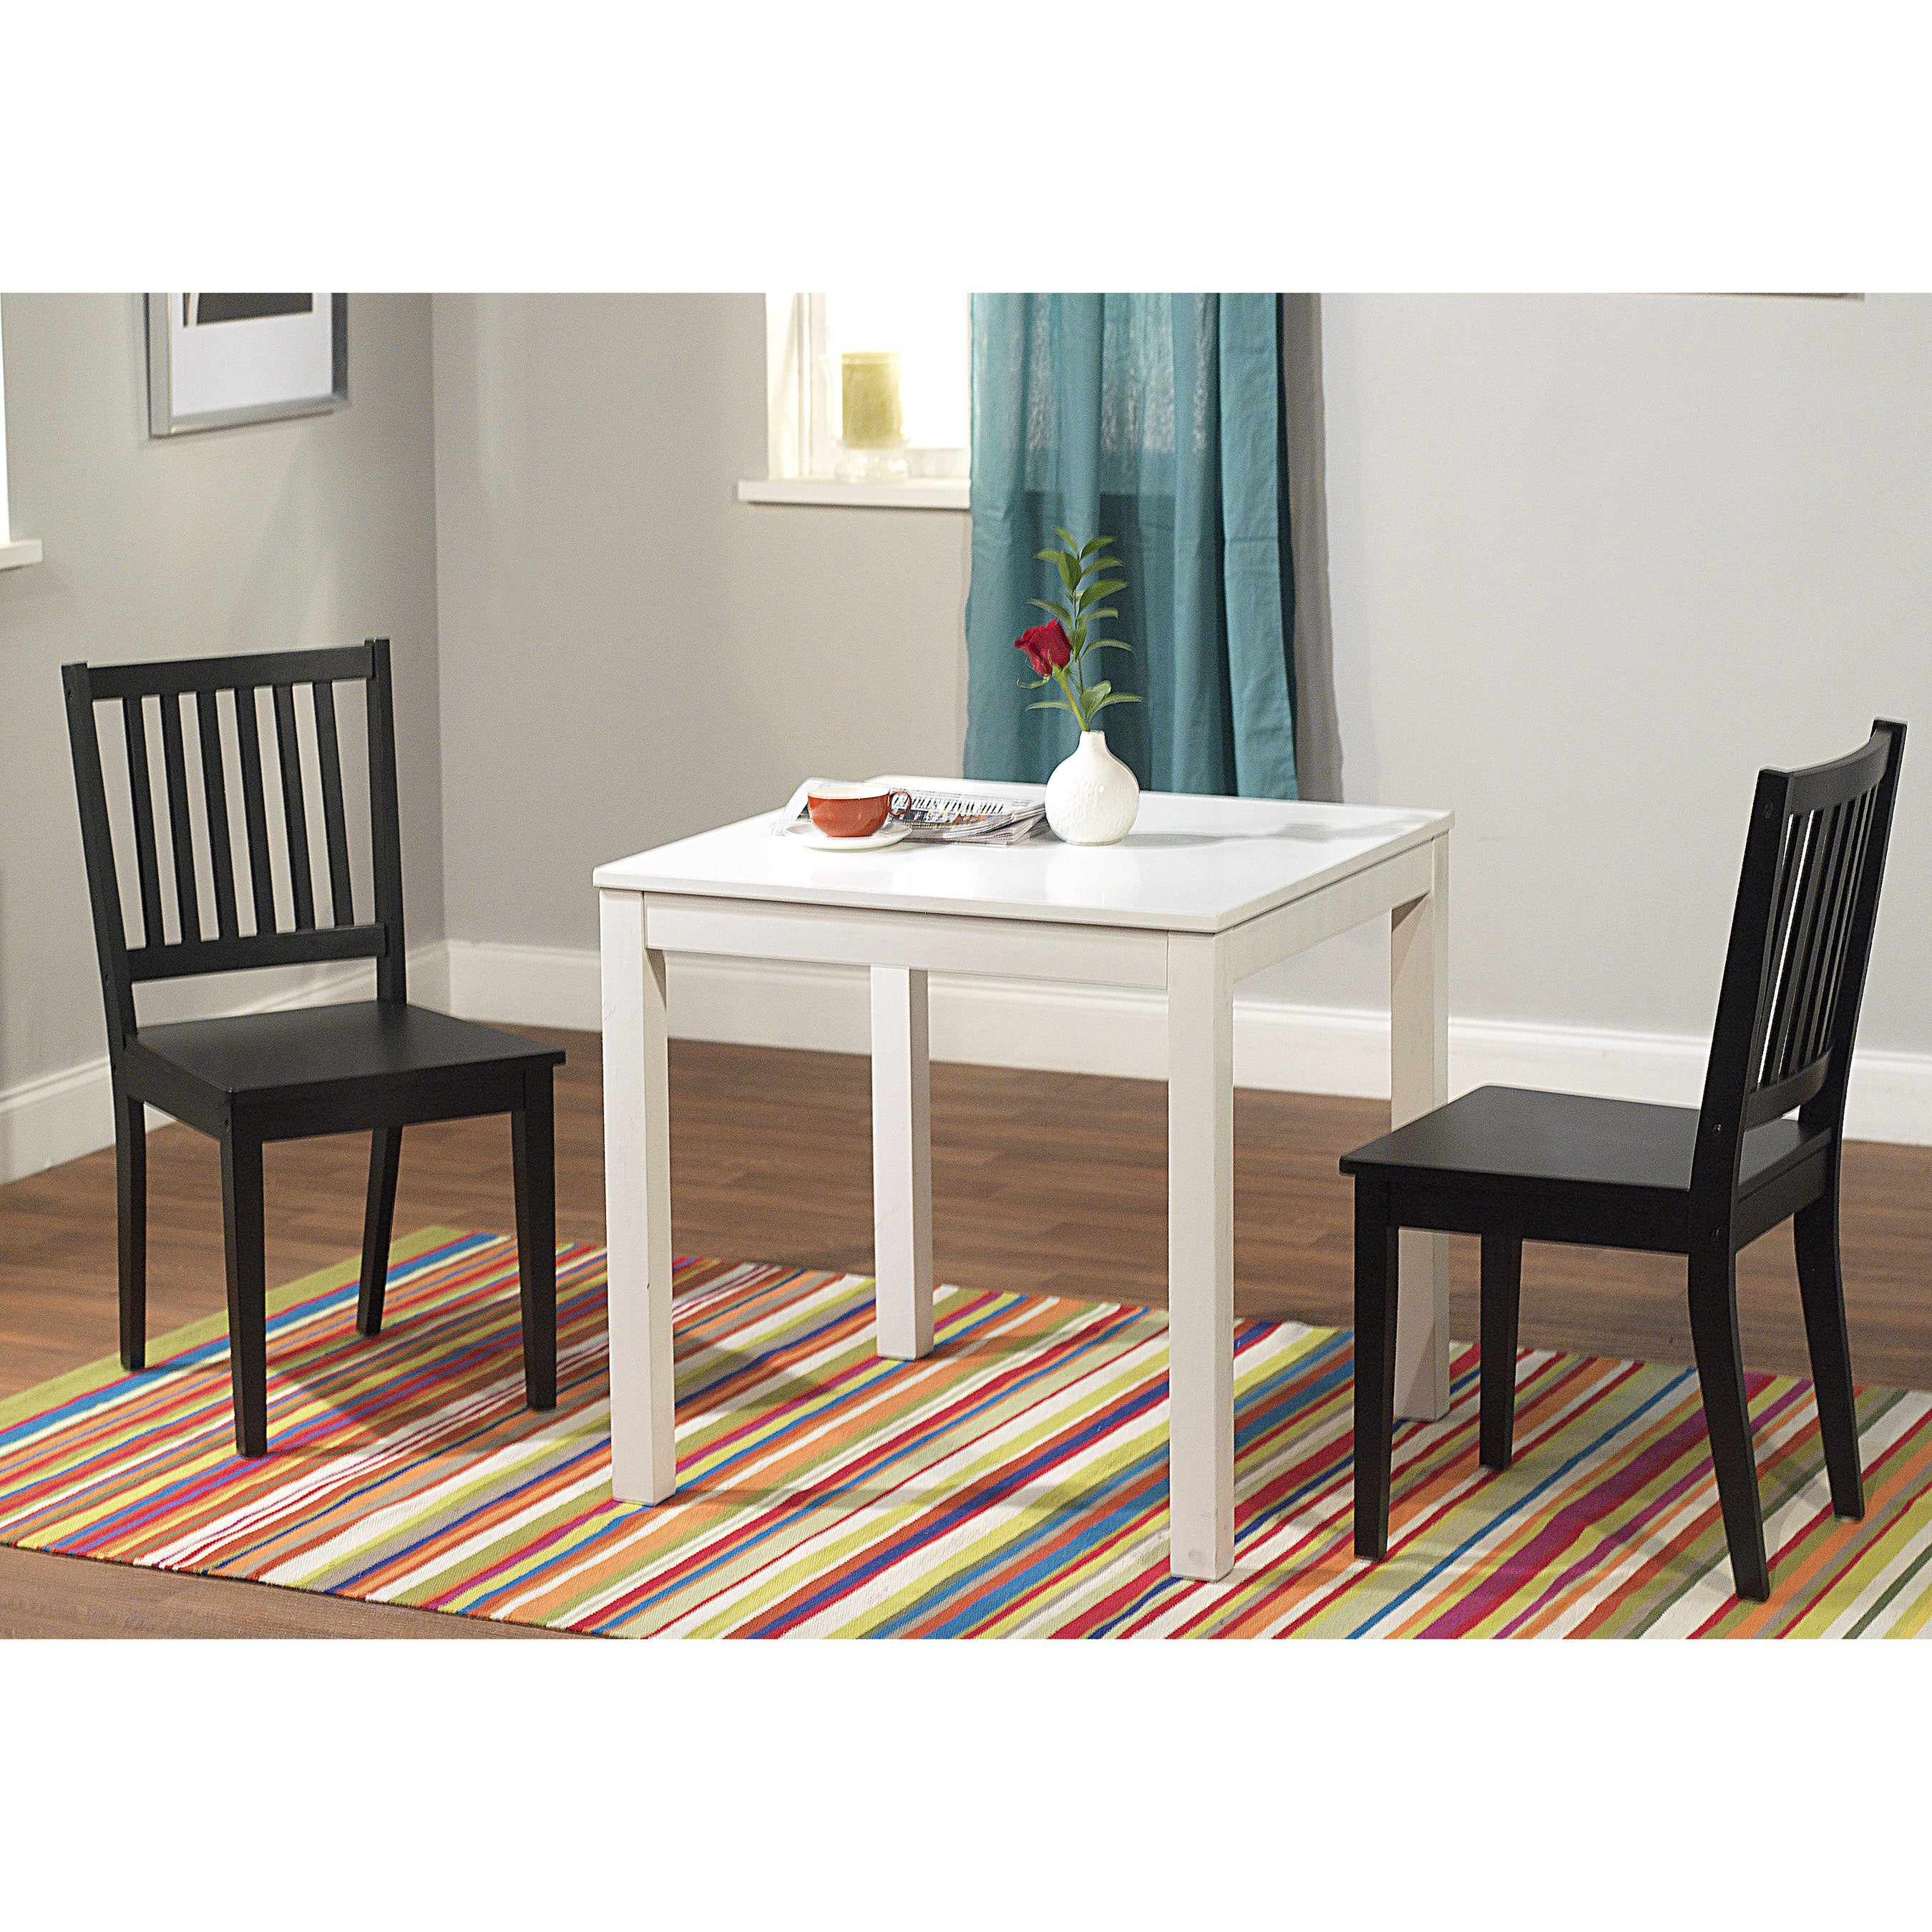 Simple Living Black and White Dining Set 3-piece